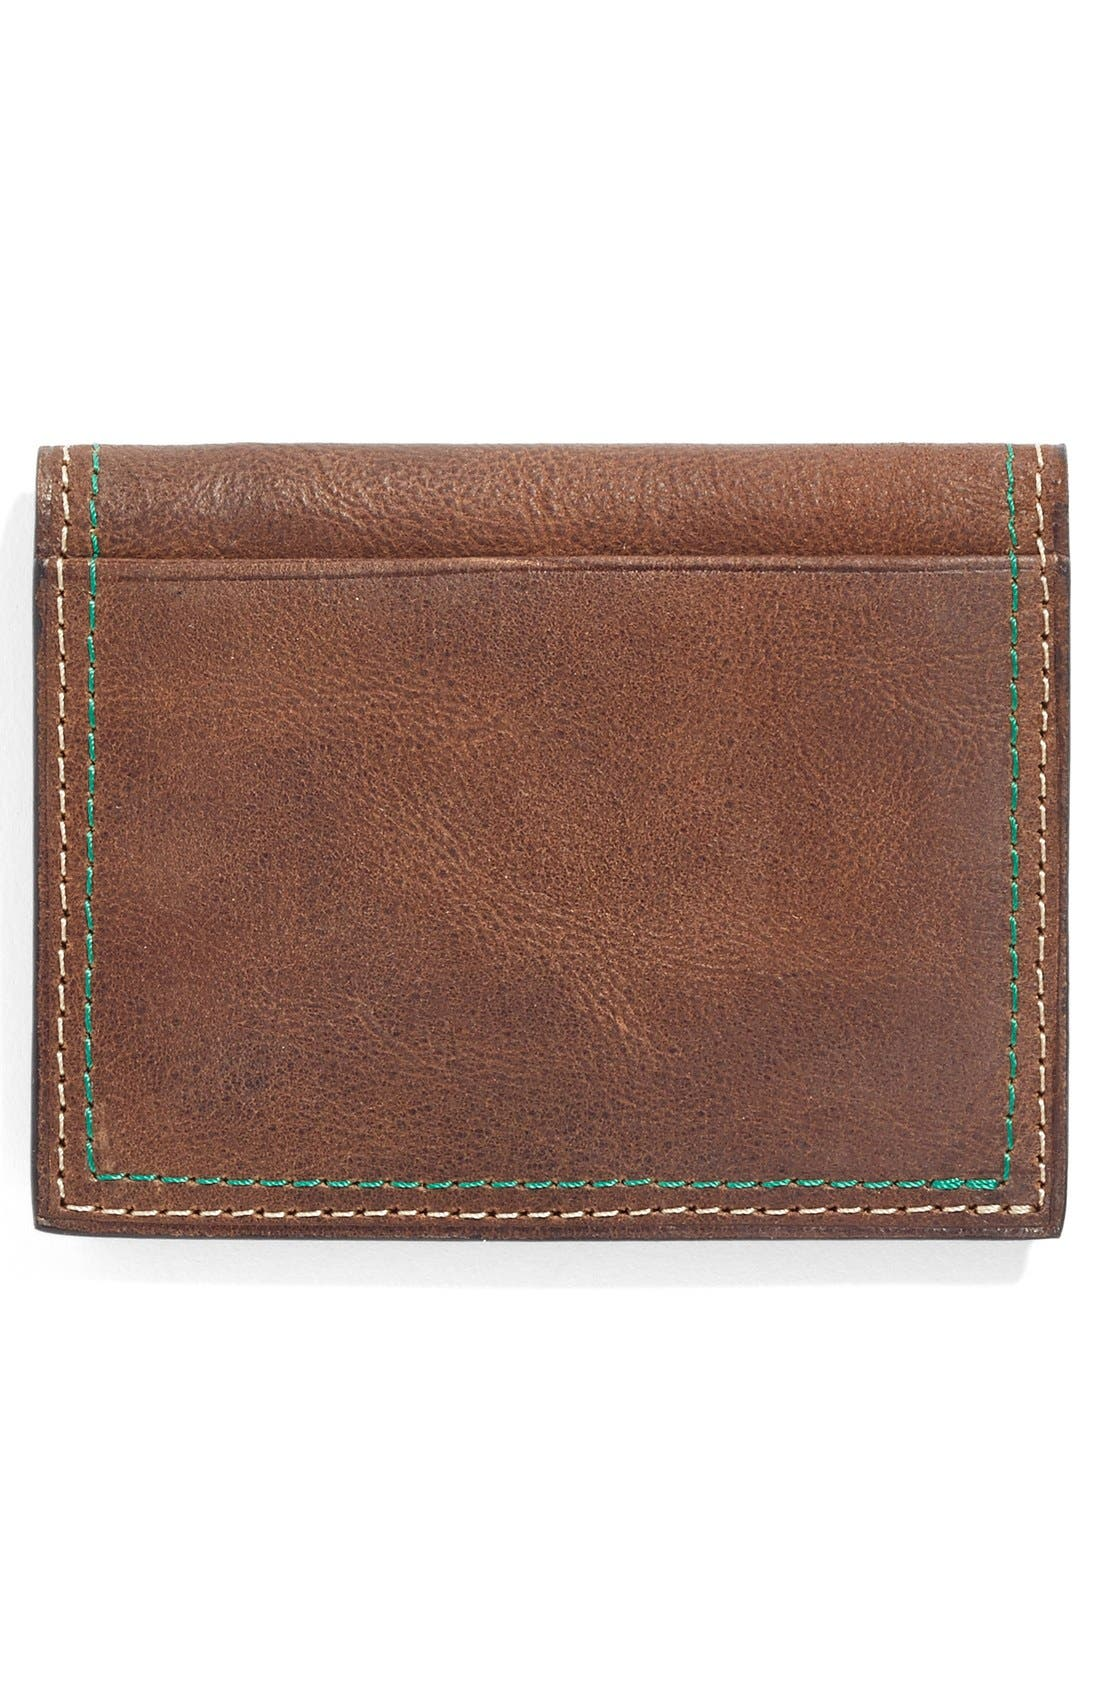 Water Buffalo Leather Card Case,                             Alternate thumbnail 3, color,